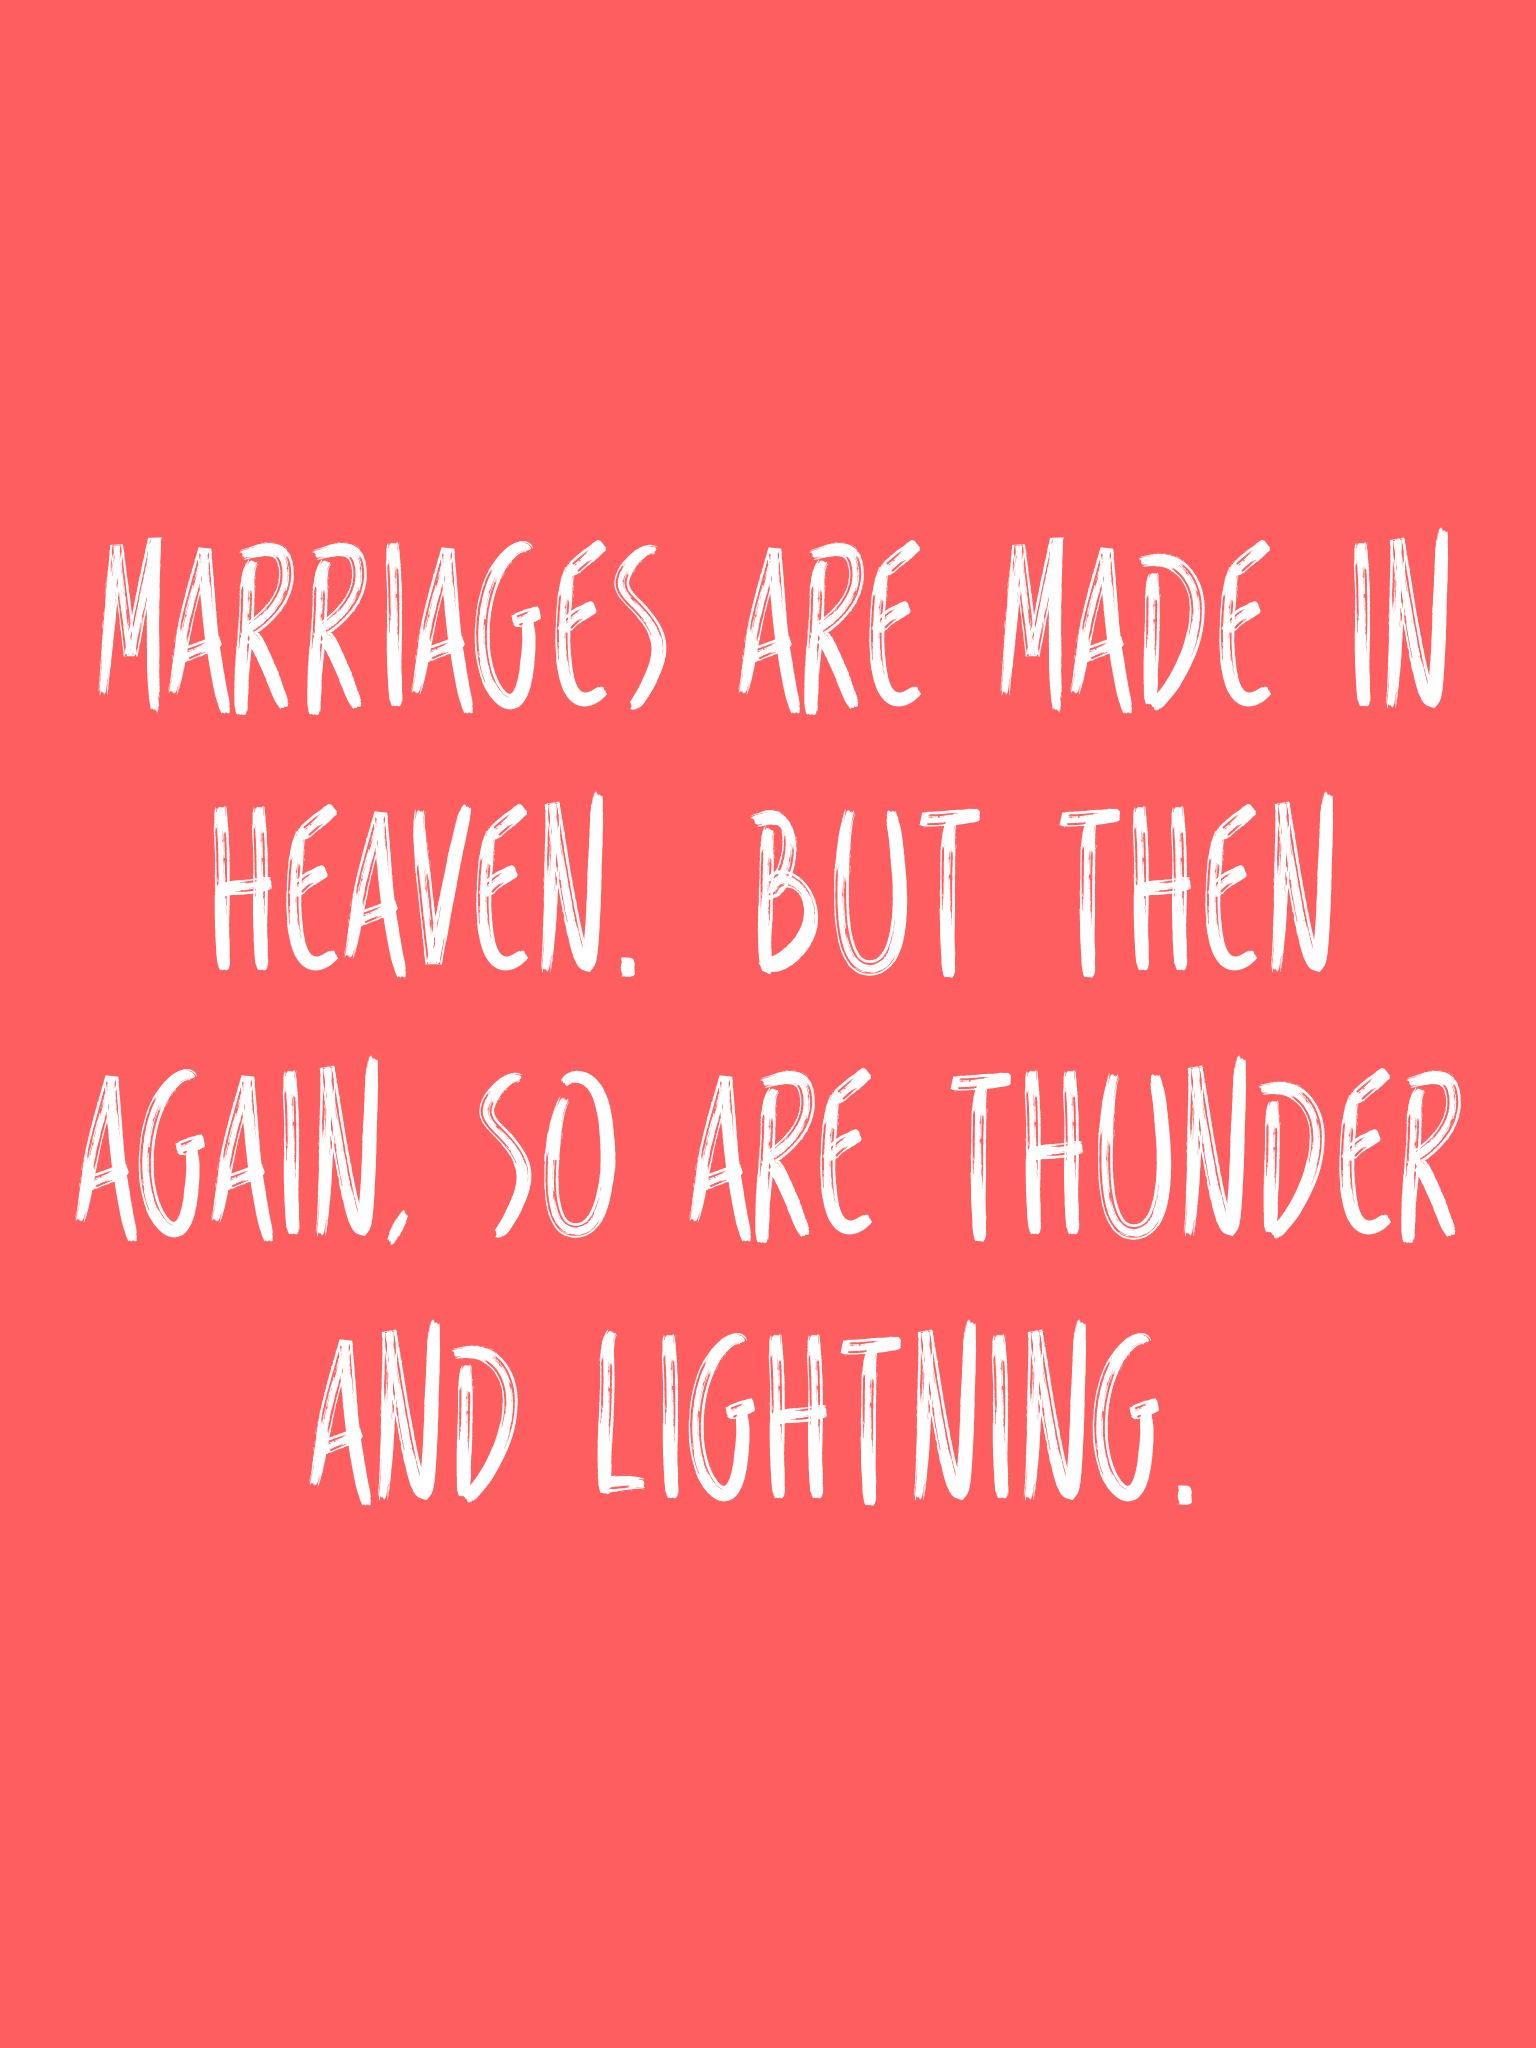 Love Quotes App Amazing Marriages Are Made In Heavenbut Then Again So Are Thunder And